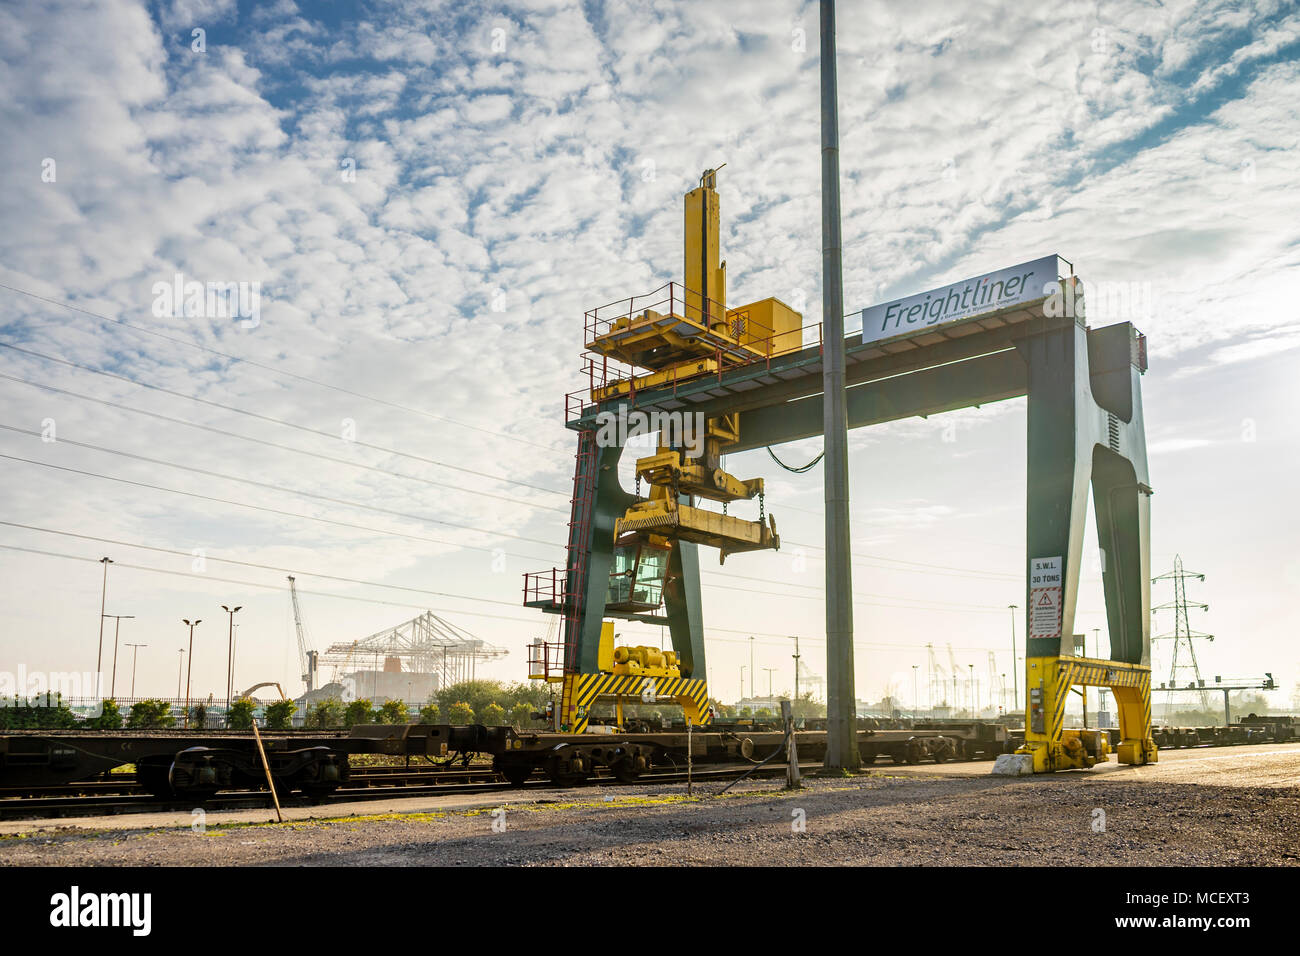 Rail mounted Freightliner crane with empty container crane in the Docks of Southampton, Port of Southampton, England, UK - Stock Image